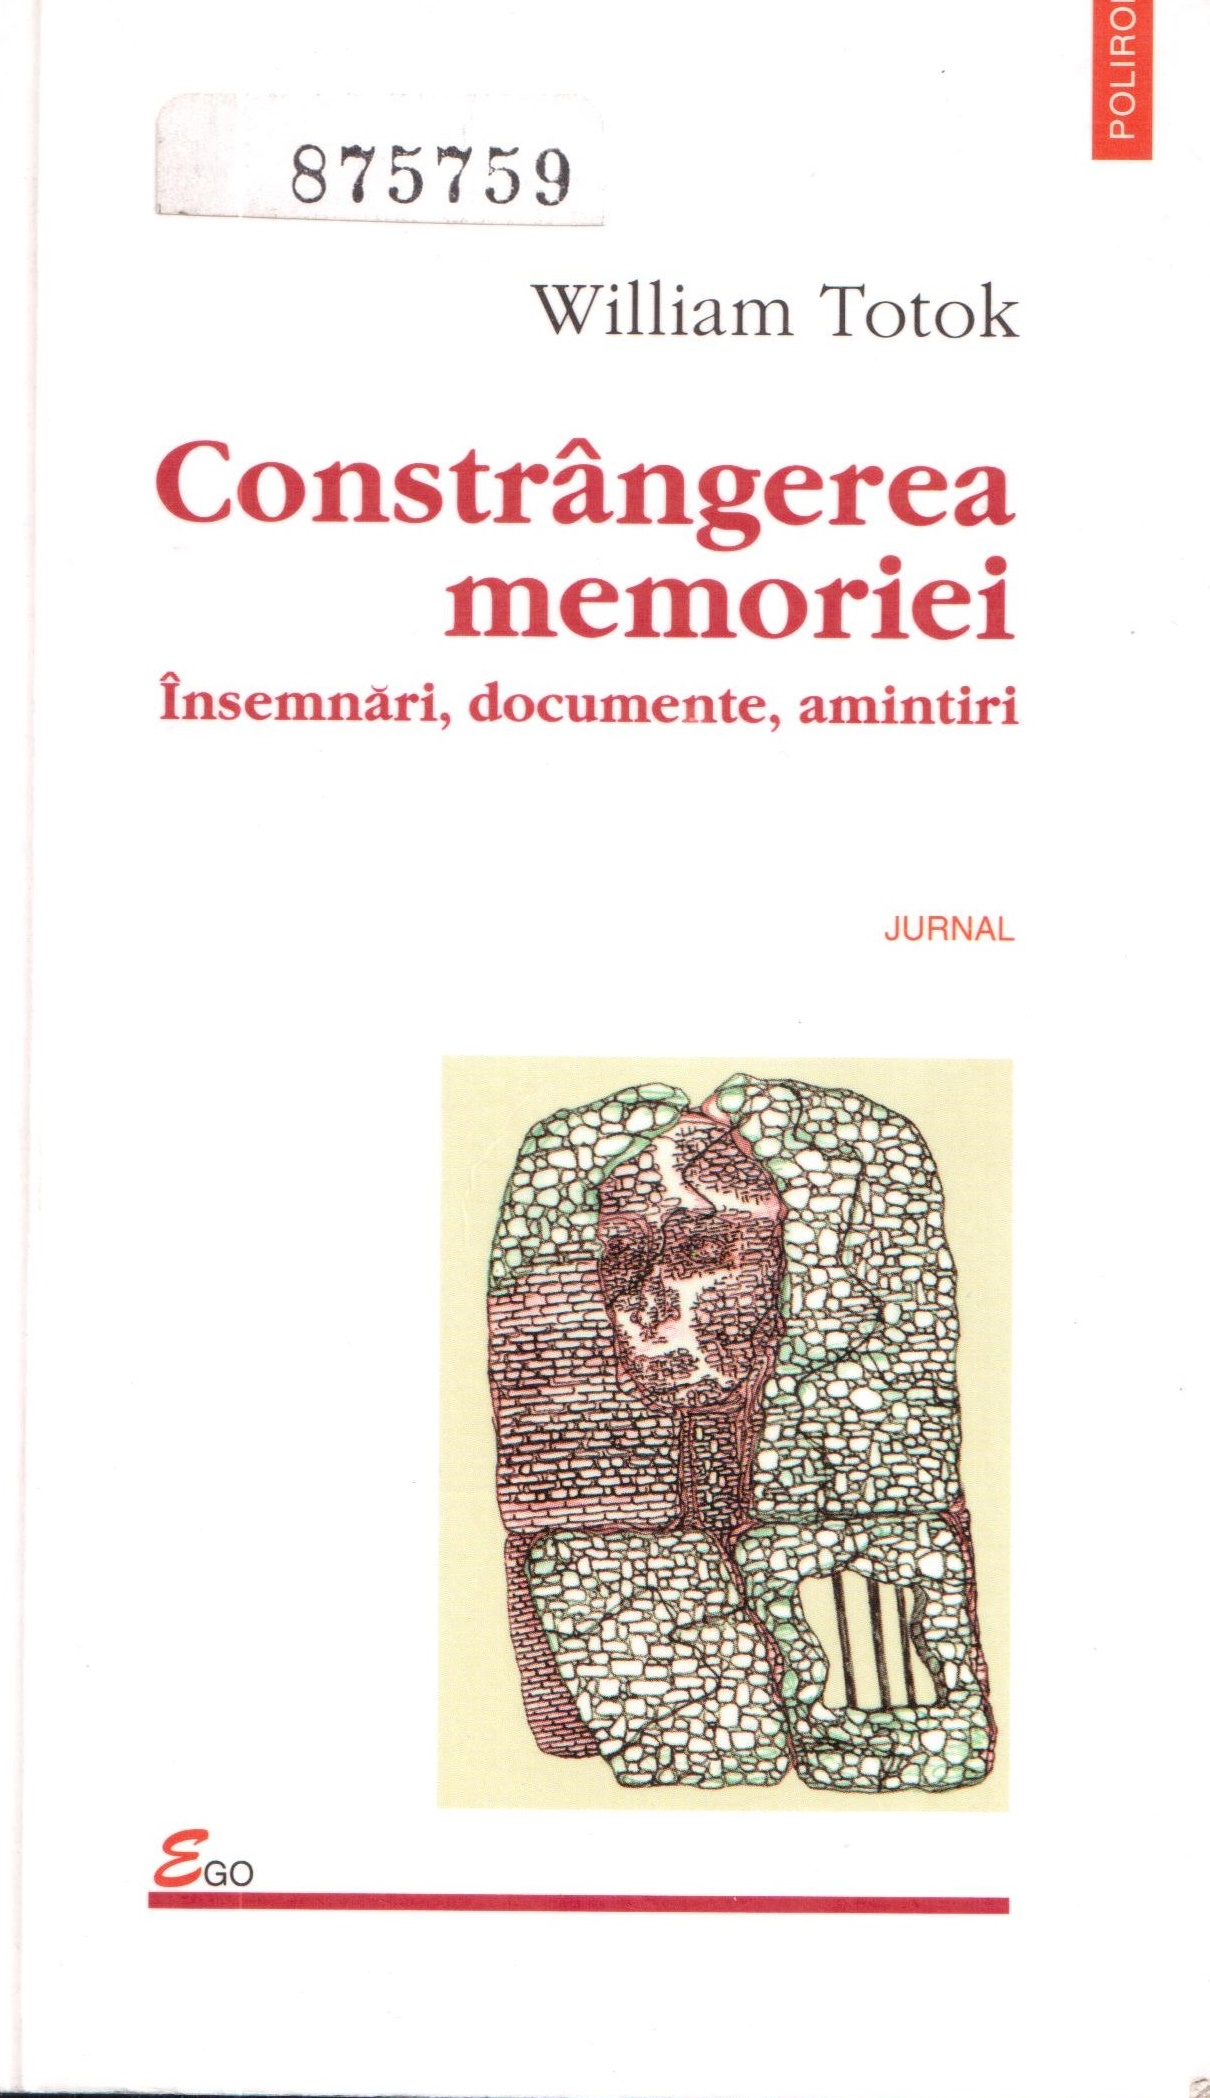 Front cover of the book Constrângerea memoriei. Însemnări, documente, amintiri (The constraint of memory: notes, documents, memories) by William Totok